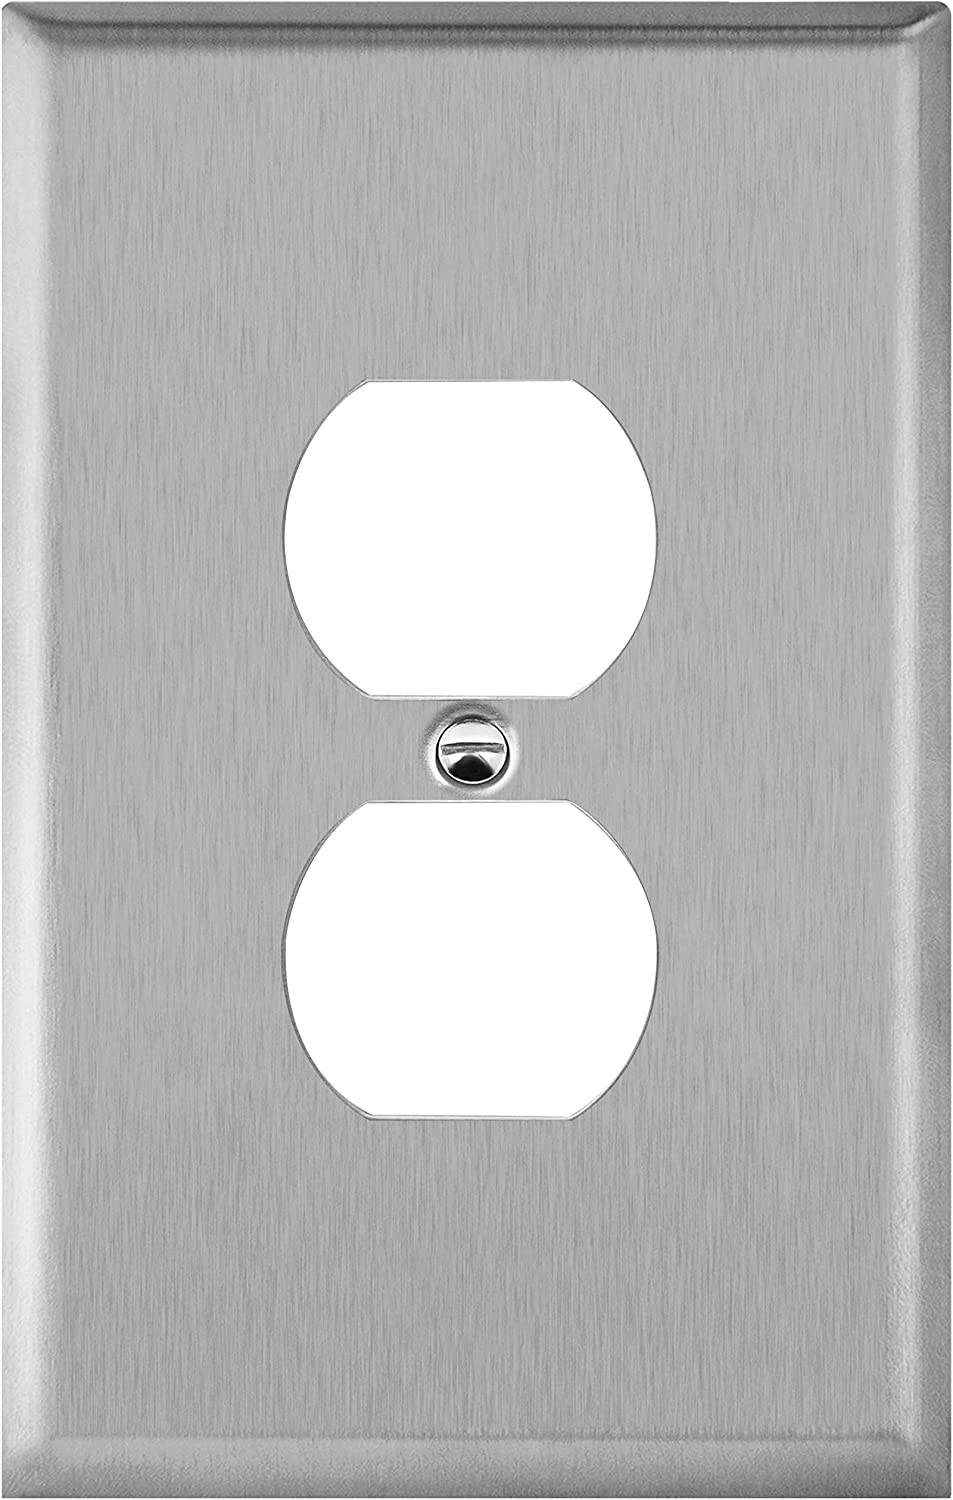 ENERLITES Duplex Receptacle Jumbo Metal Wall Plate, Stainless Steel Outlet Cover, Corrosion Resistant, Over Size 1-Gang 5.5